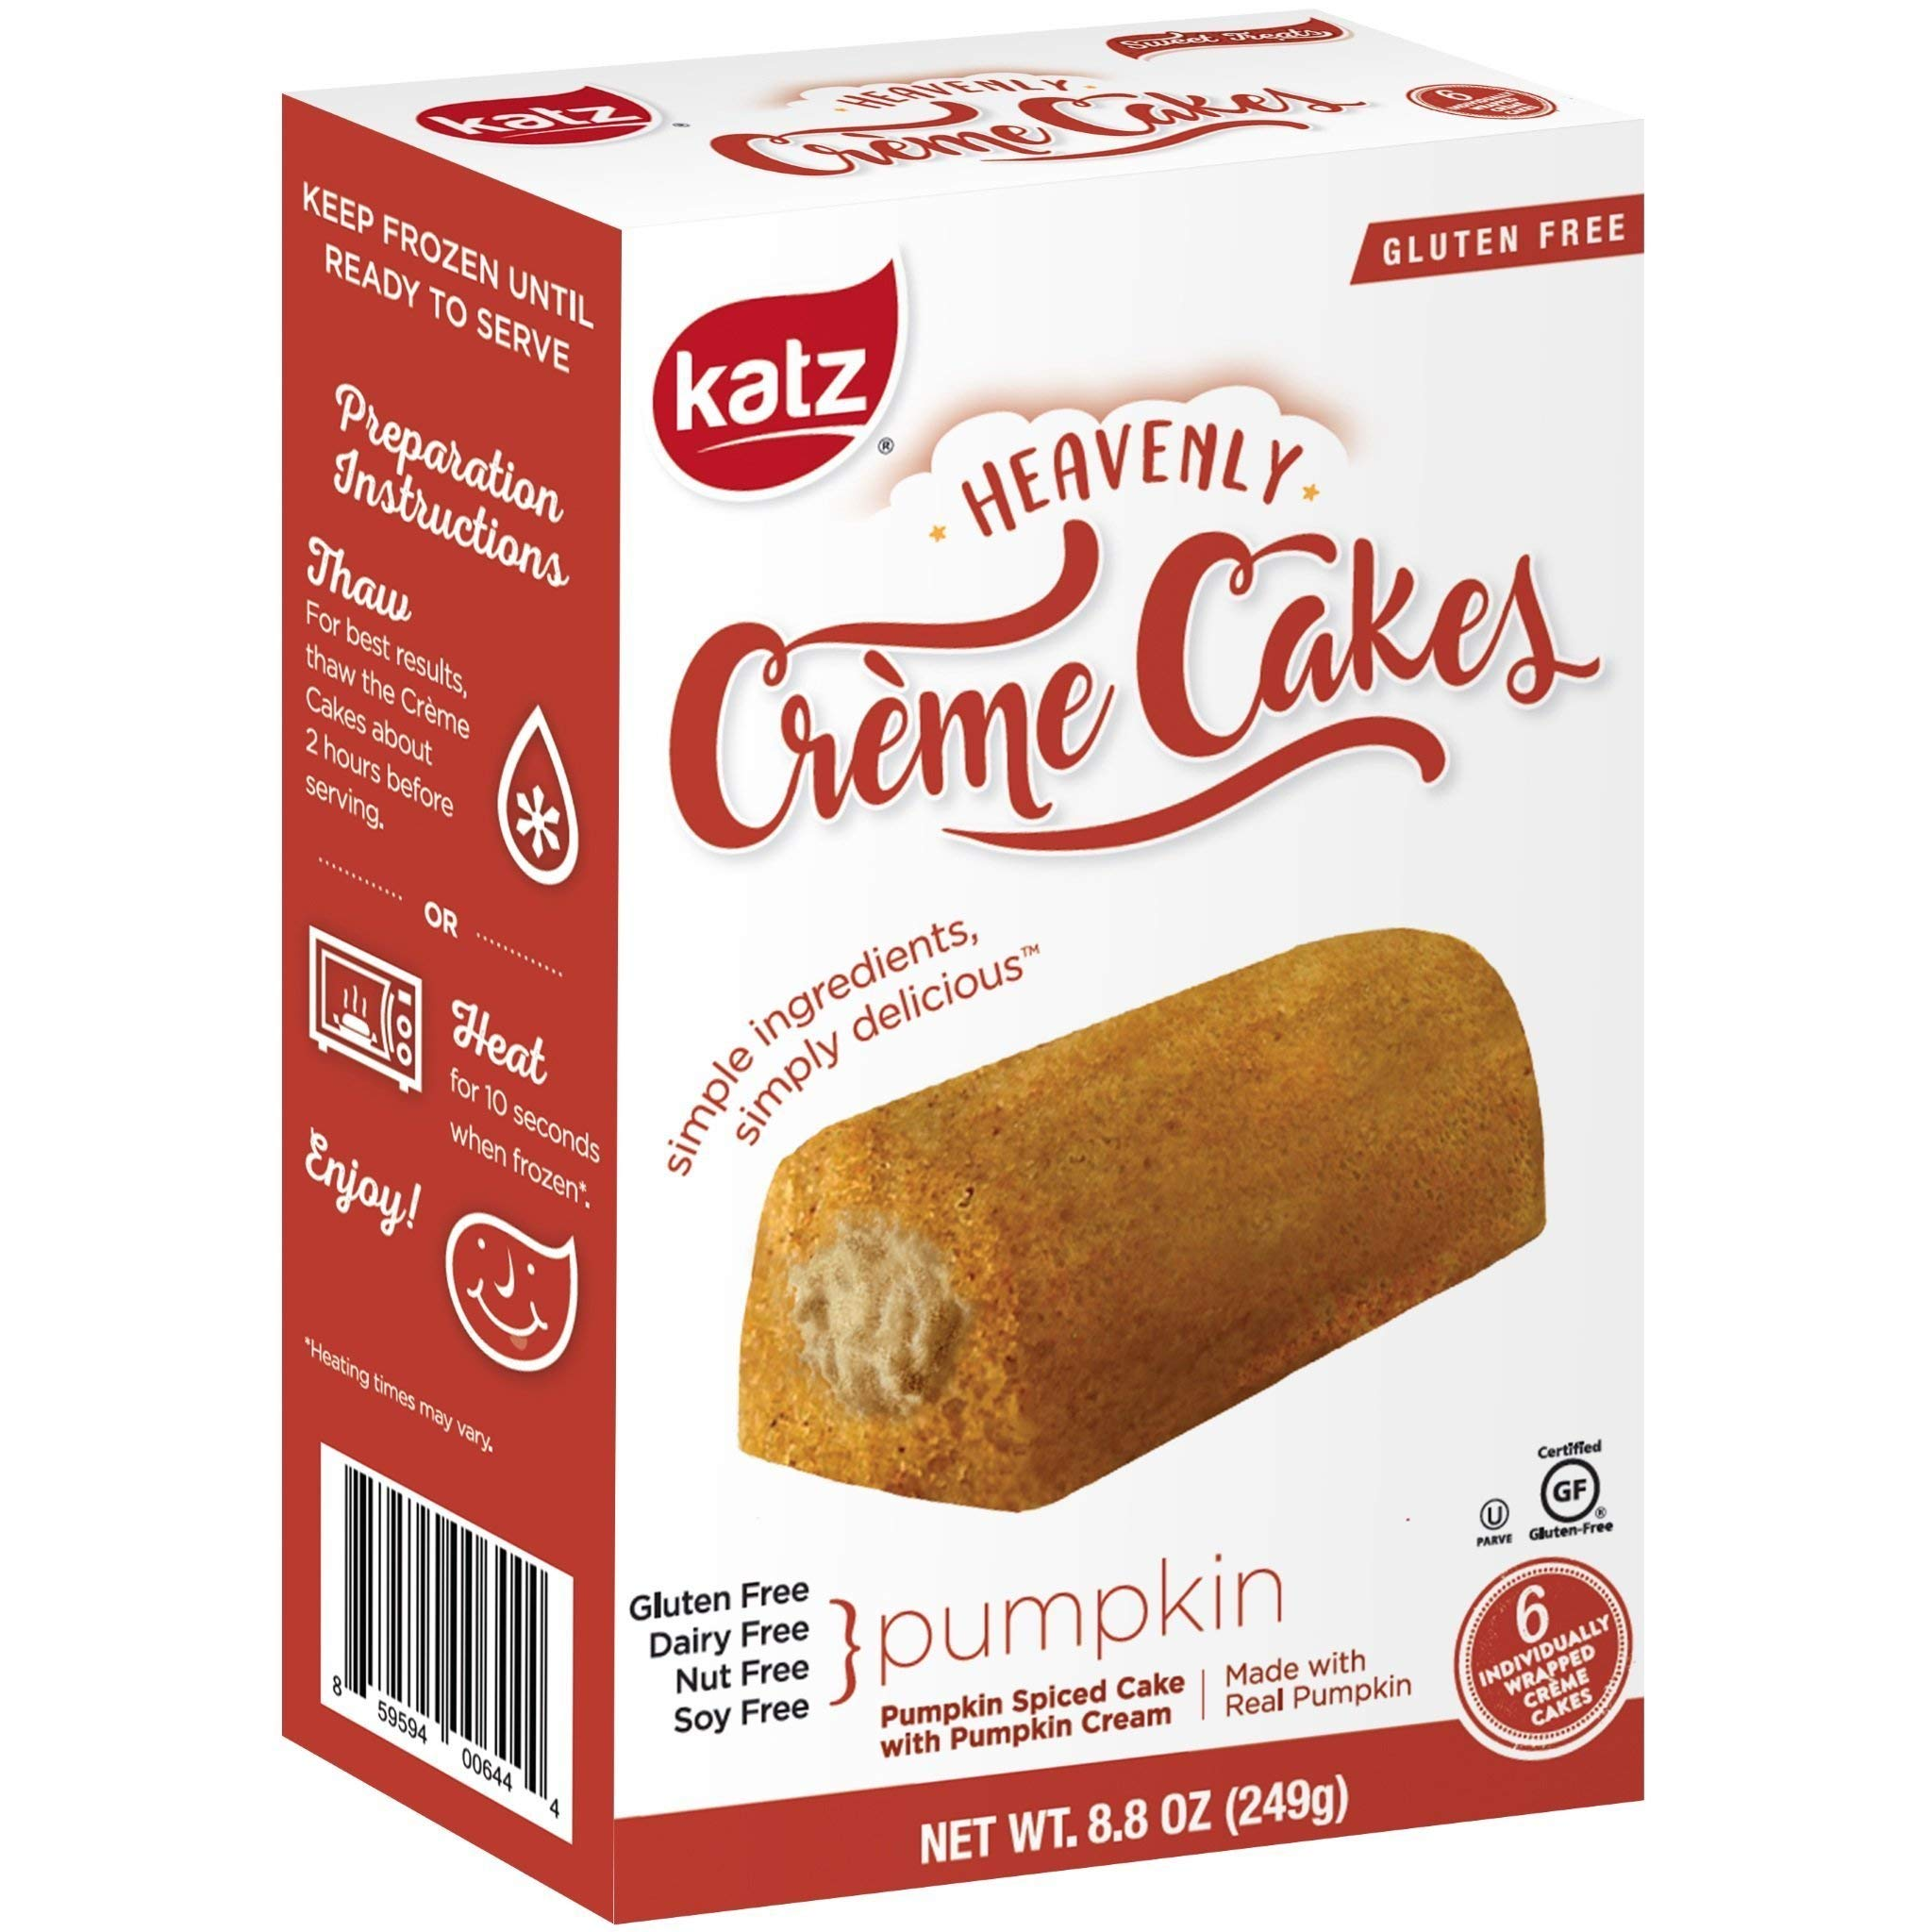 Katz Gluten Free Pumpkin Spice Crème Cakes | Dairy, Nut, Soy and Gluten Free | Kosher (6 Packs of 6 Crème Cakes, 8.8 Ounce Each) by Katz Gluten Free